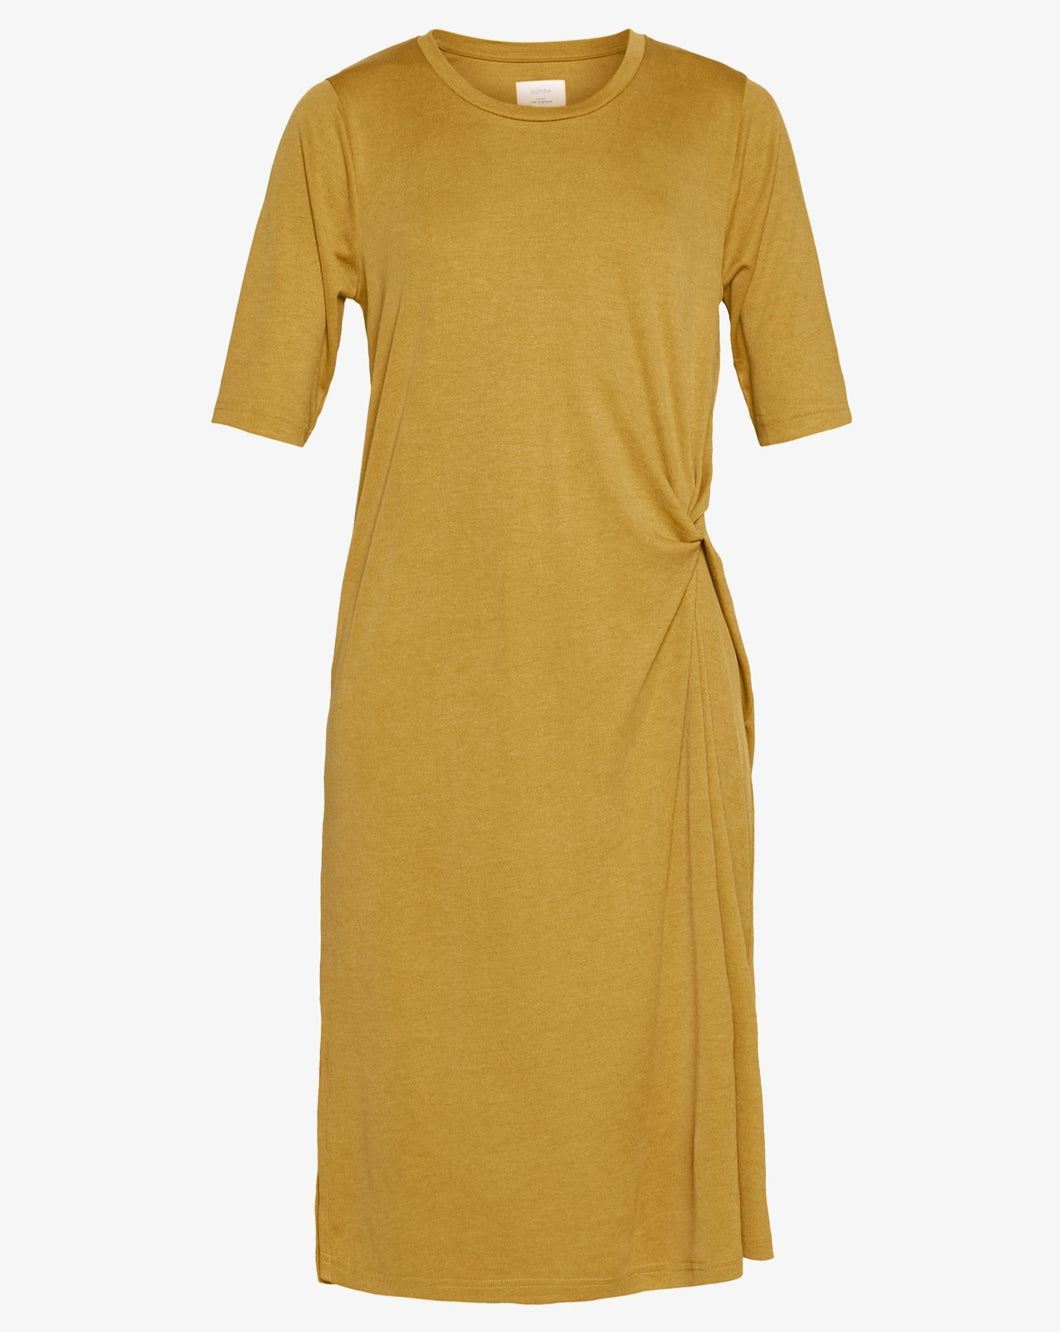 NUAUDRINA DRESS | YELLOW | NUMPH